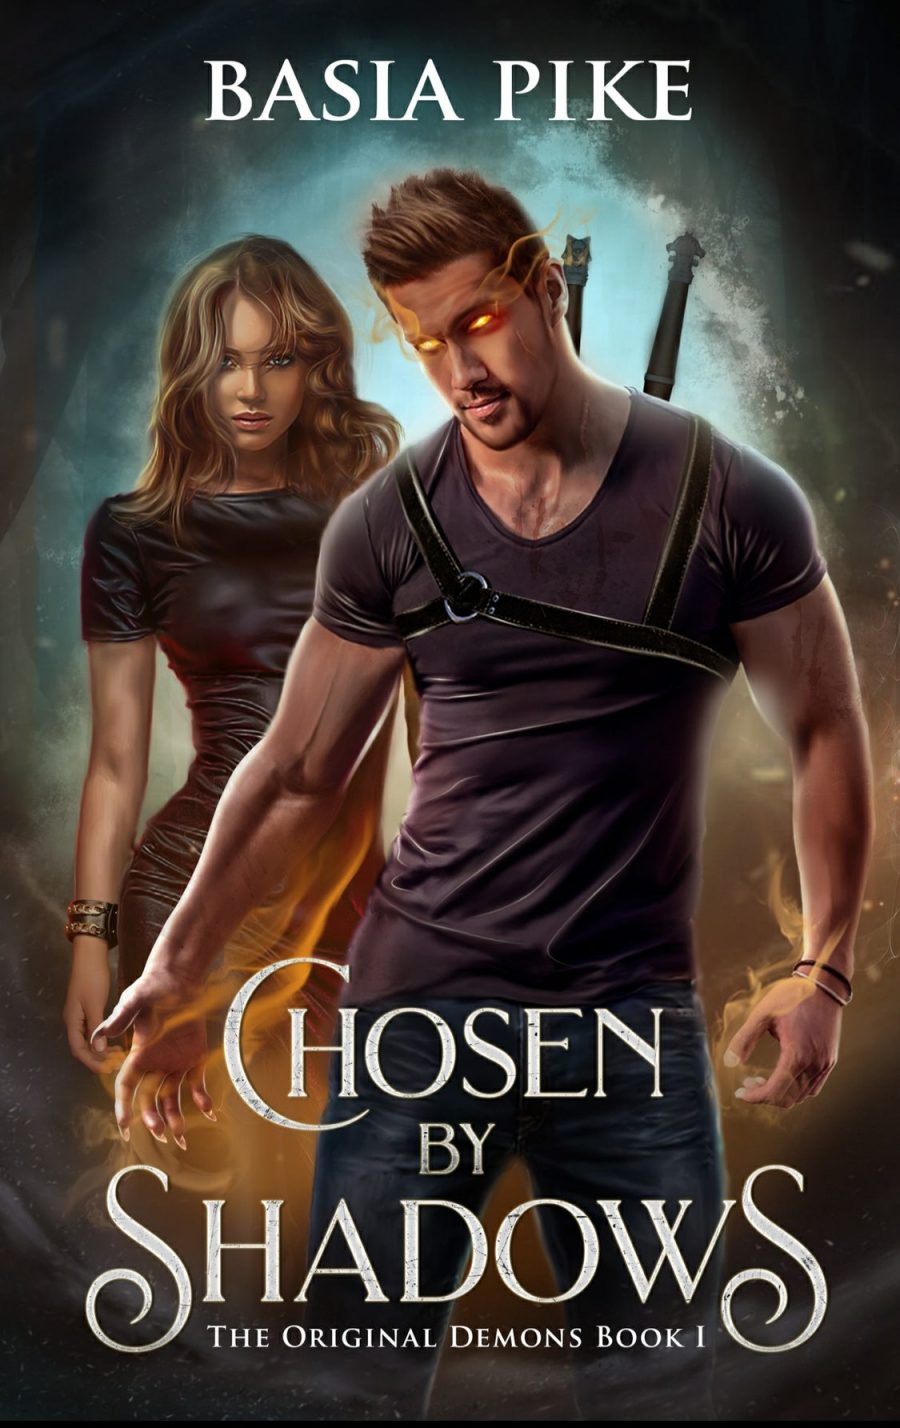 Chosen by Shadows by Basia Pike – A Book Review